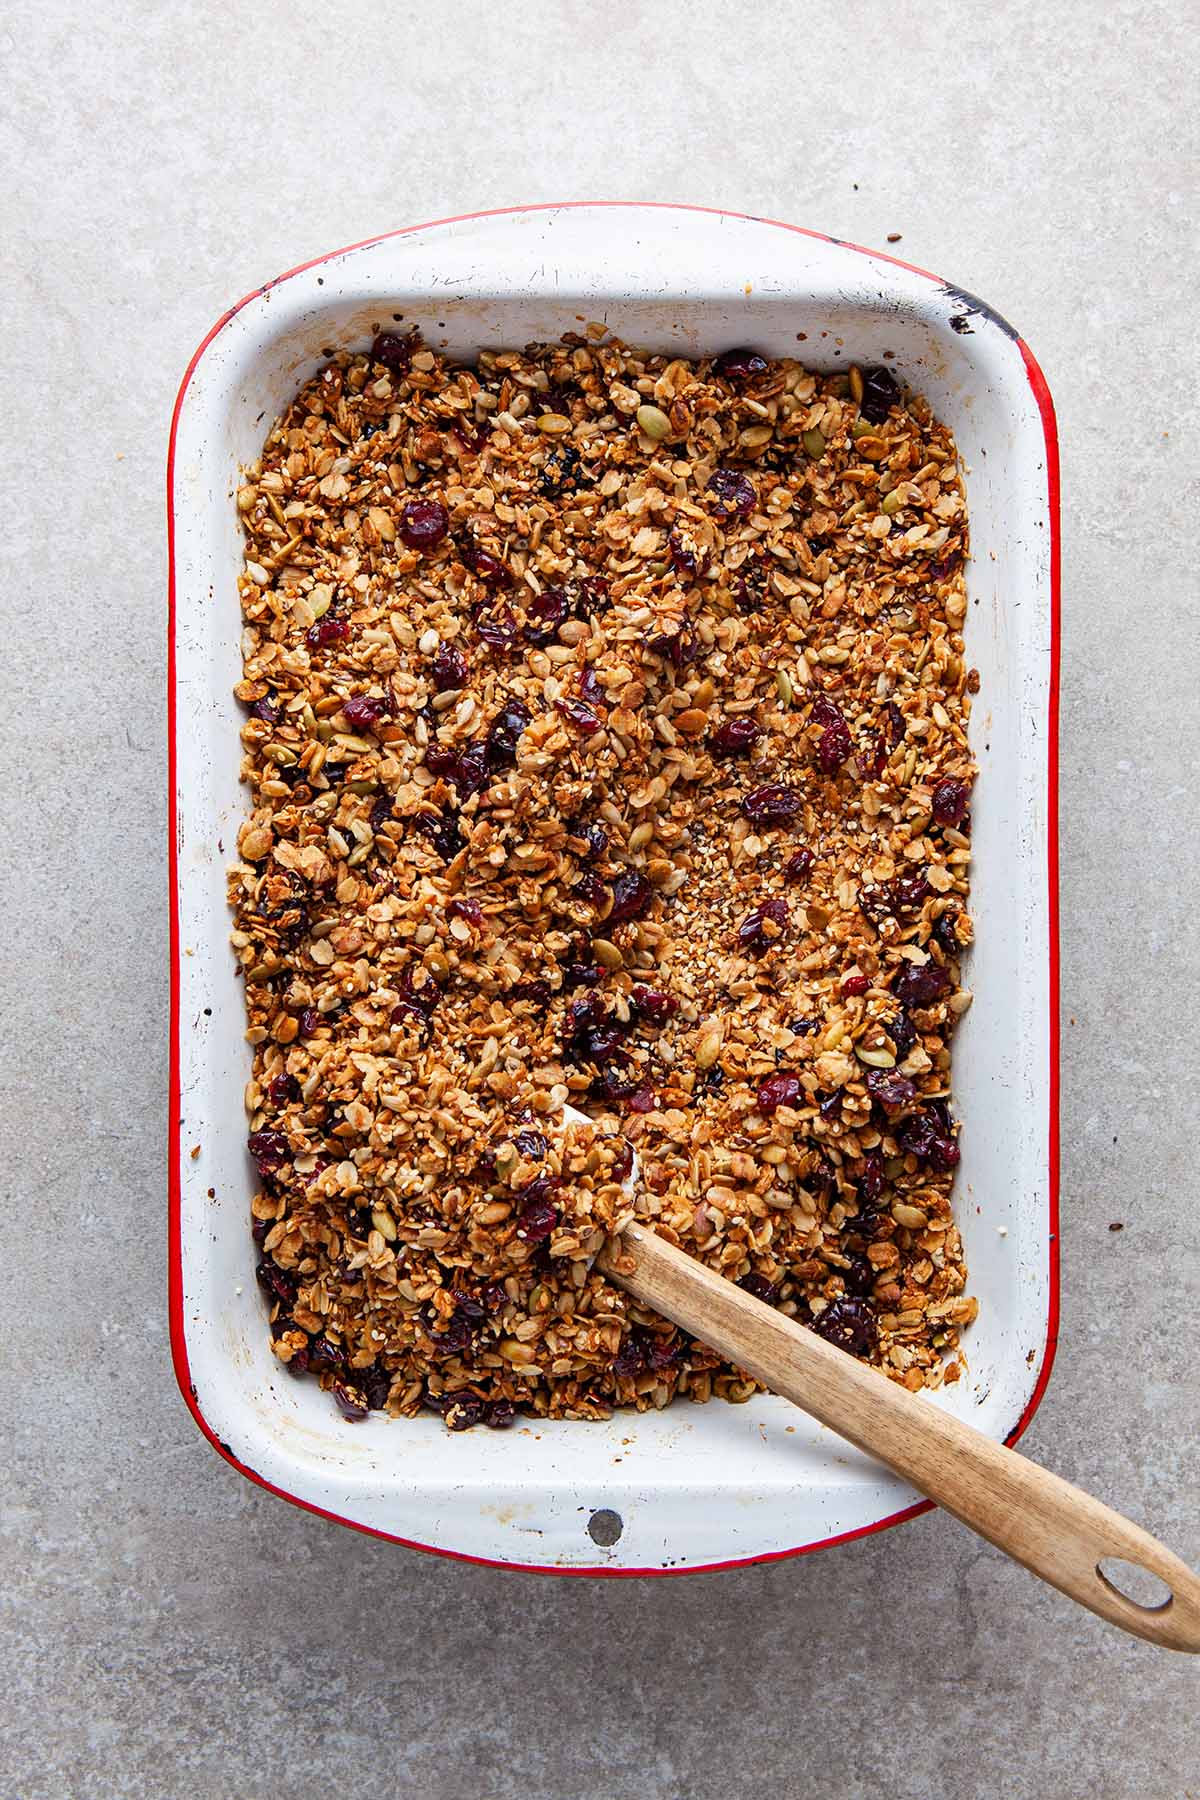 A pan of baked nut-free granola.